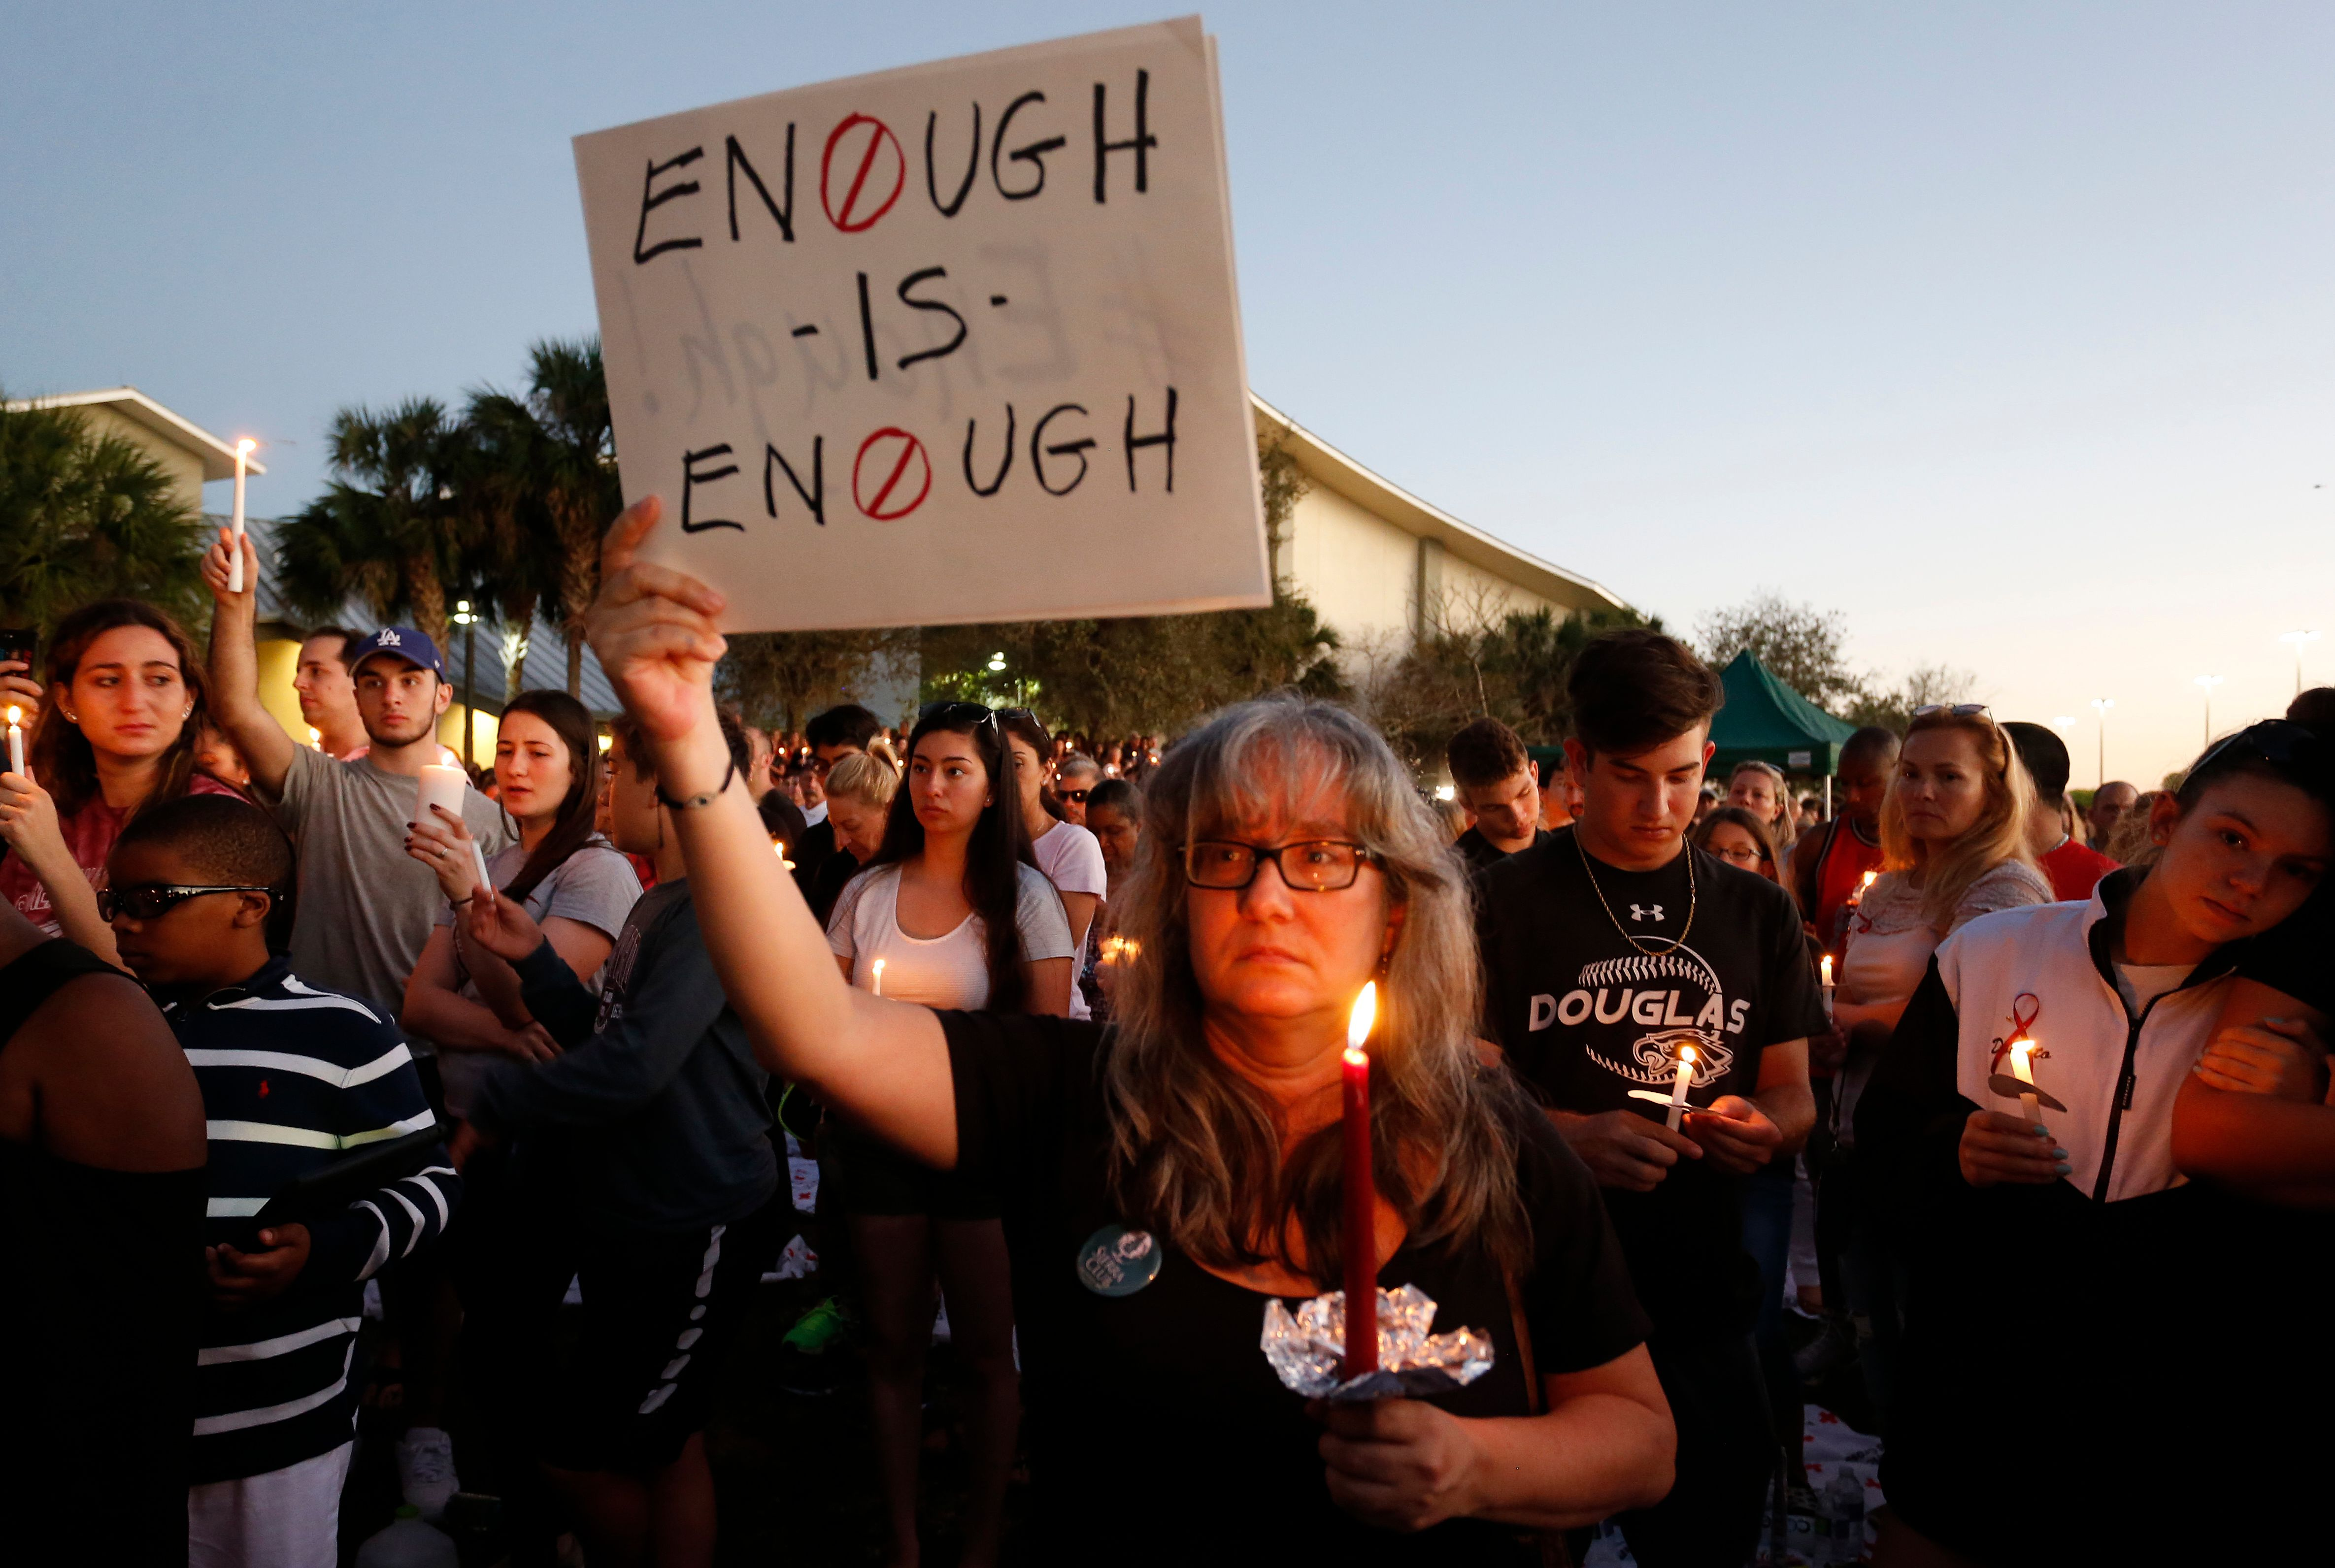 Mourners stand during a candlelight vigil for the victims of Marjory Stoneman Douglas High School shooting in Parkland, Florida on Feb. 15, 2018.